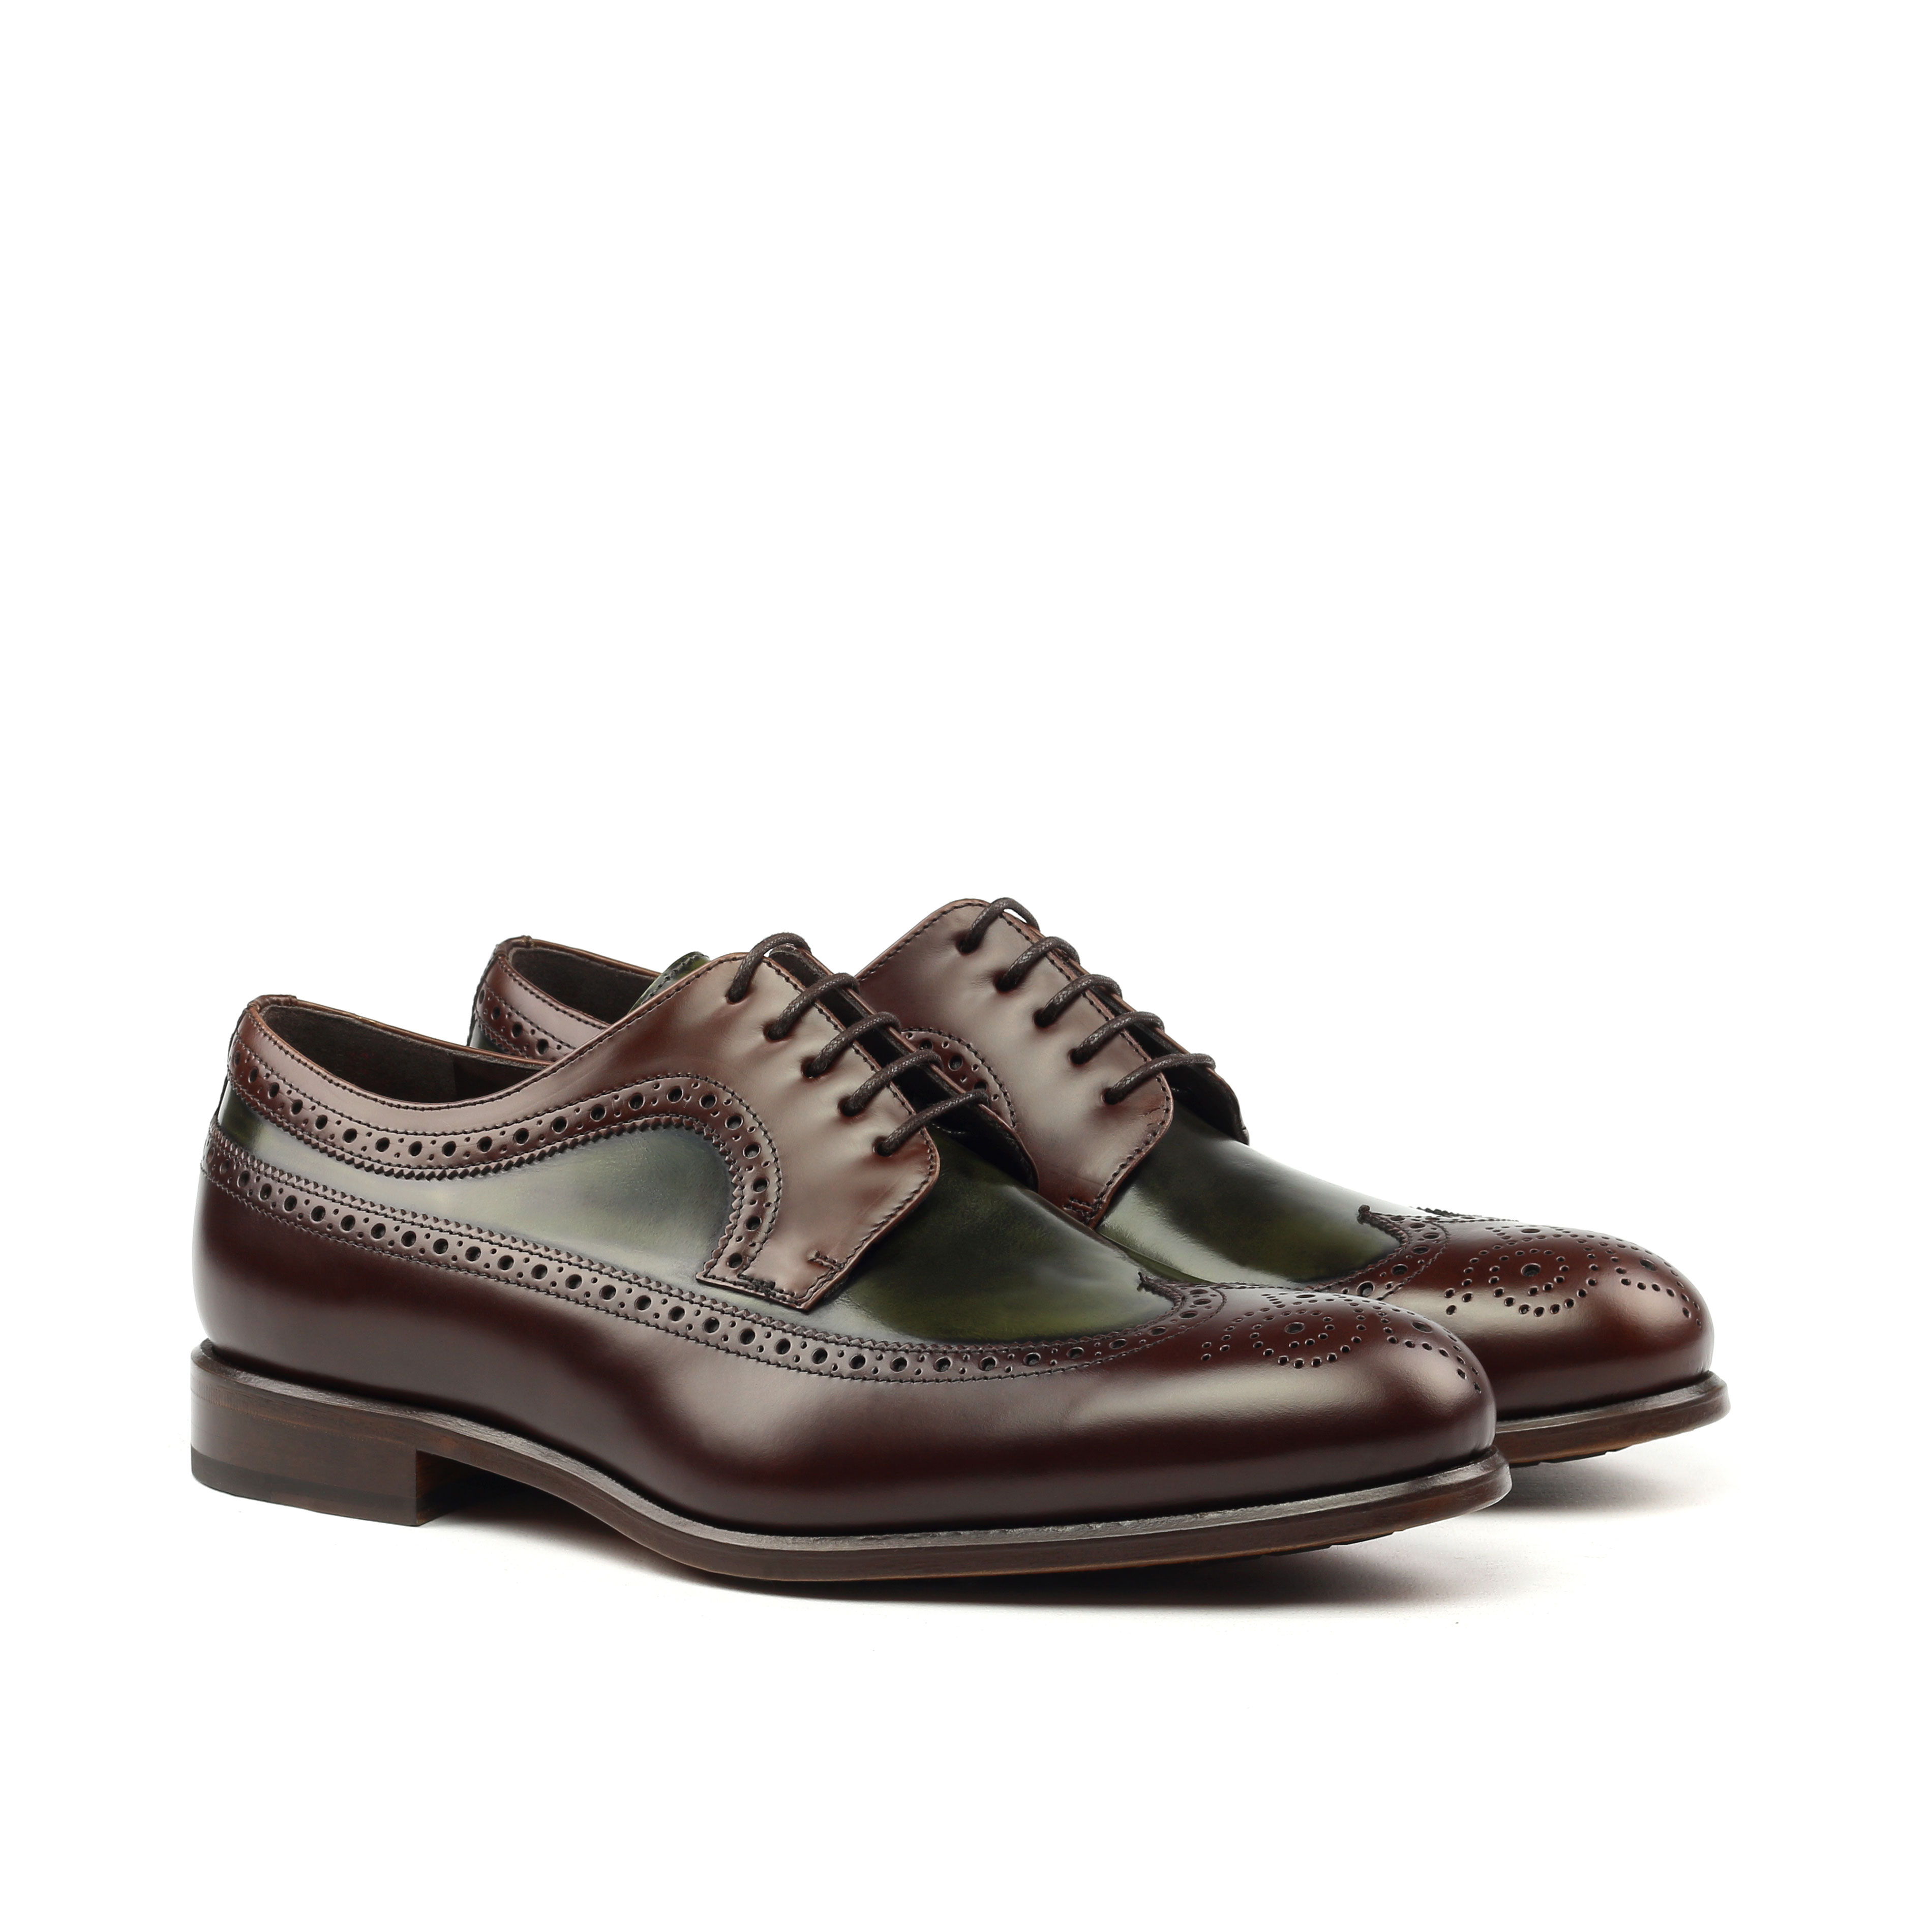 Longwing – Oxblood and Green Polished Calf-Ang5